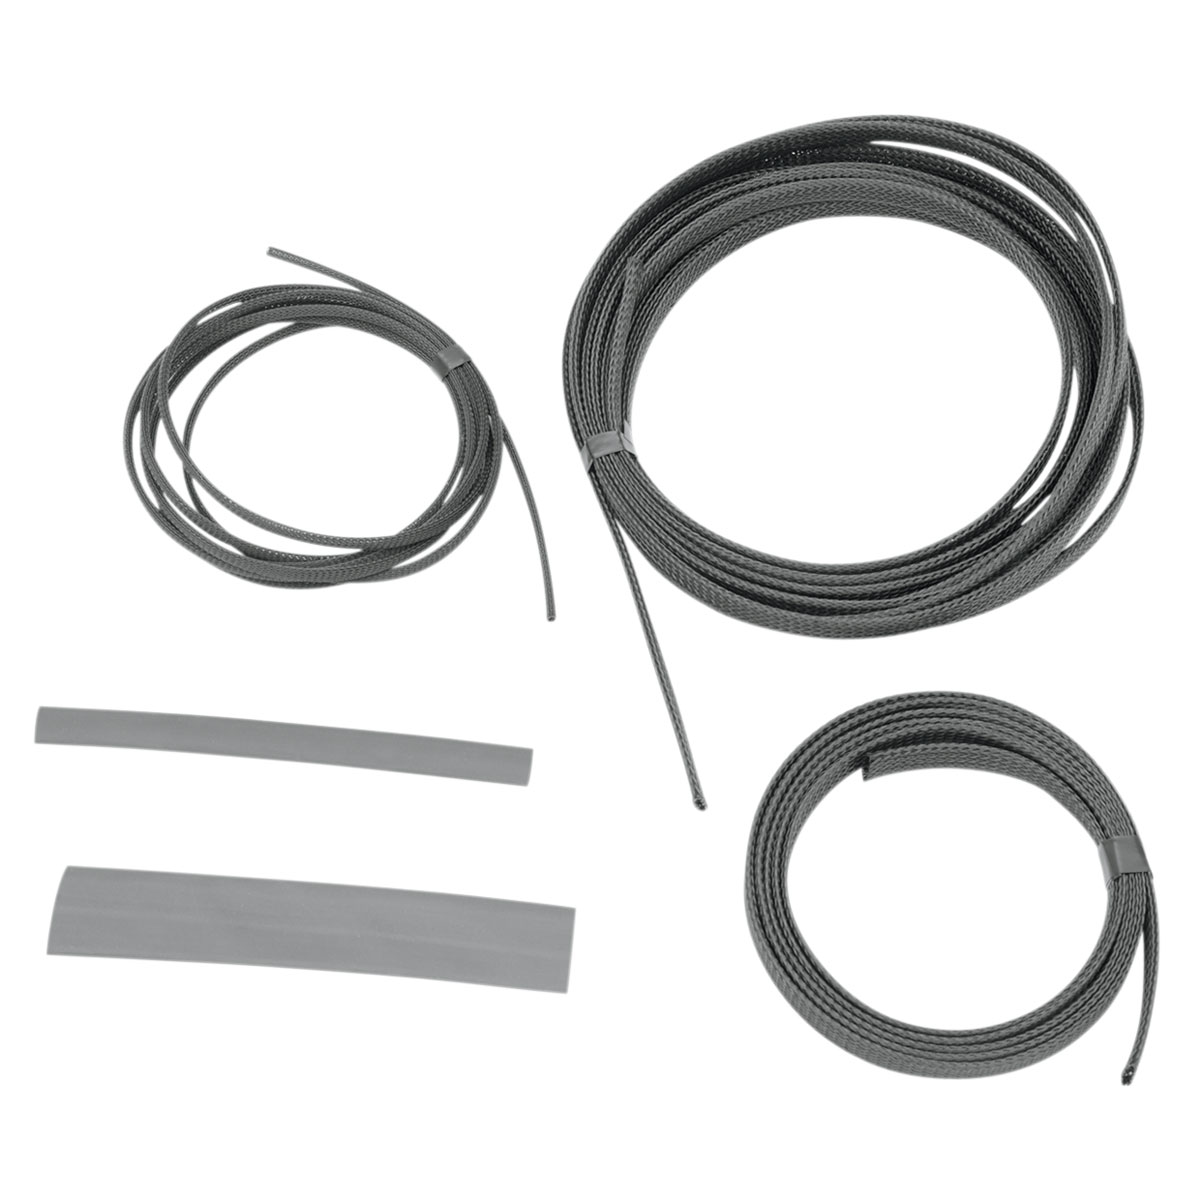 Baron Custom Accessories Flexi Wire Hose Covering Kit